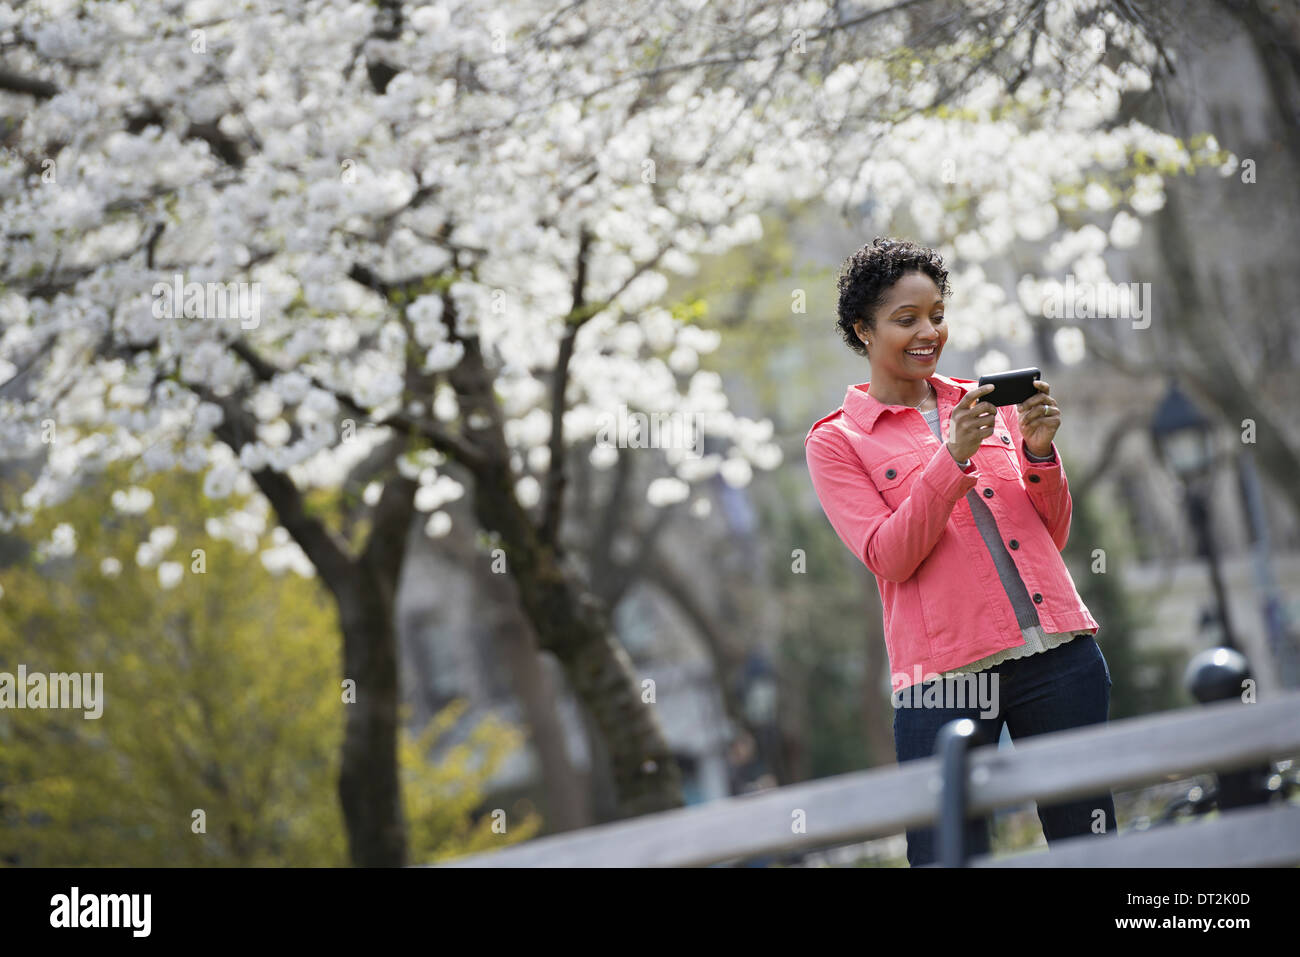 Outdoors in the city in spring time New York City park White blossom on the trees A woman holding her mobile phone and smiling - Stock Image